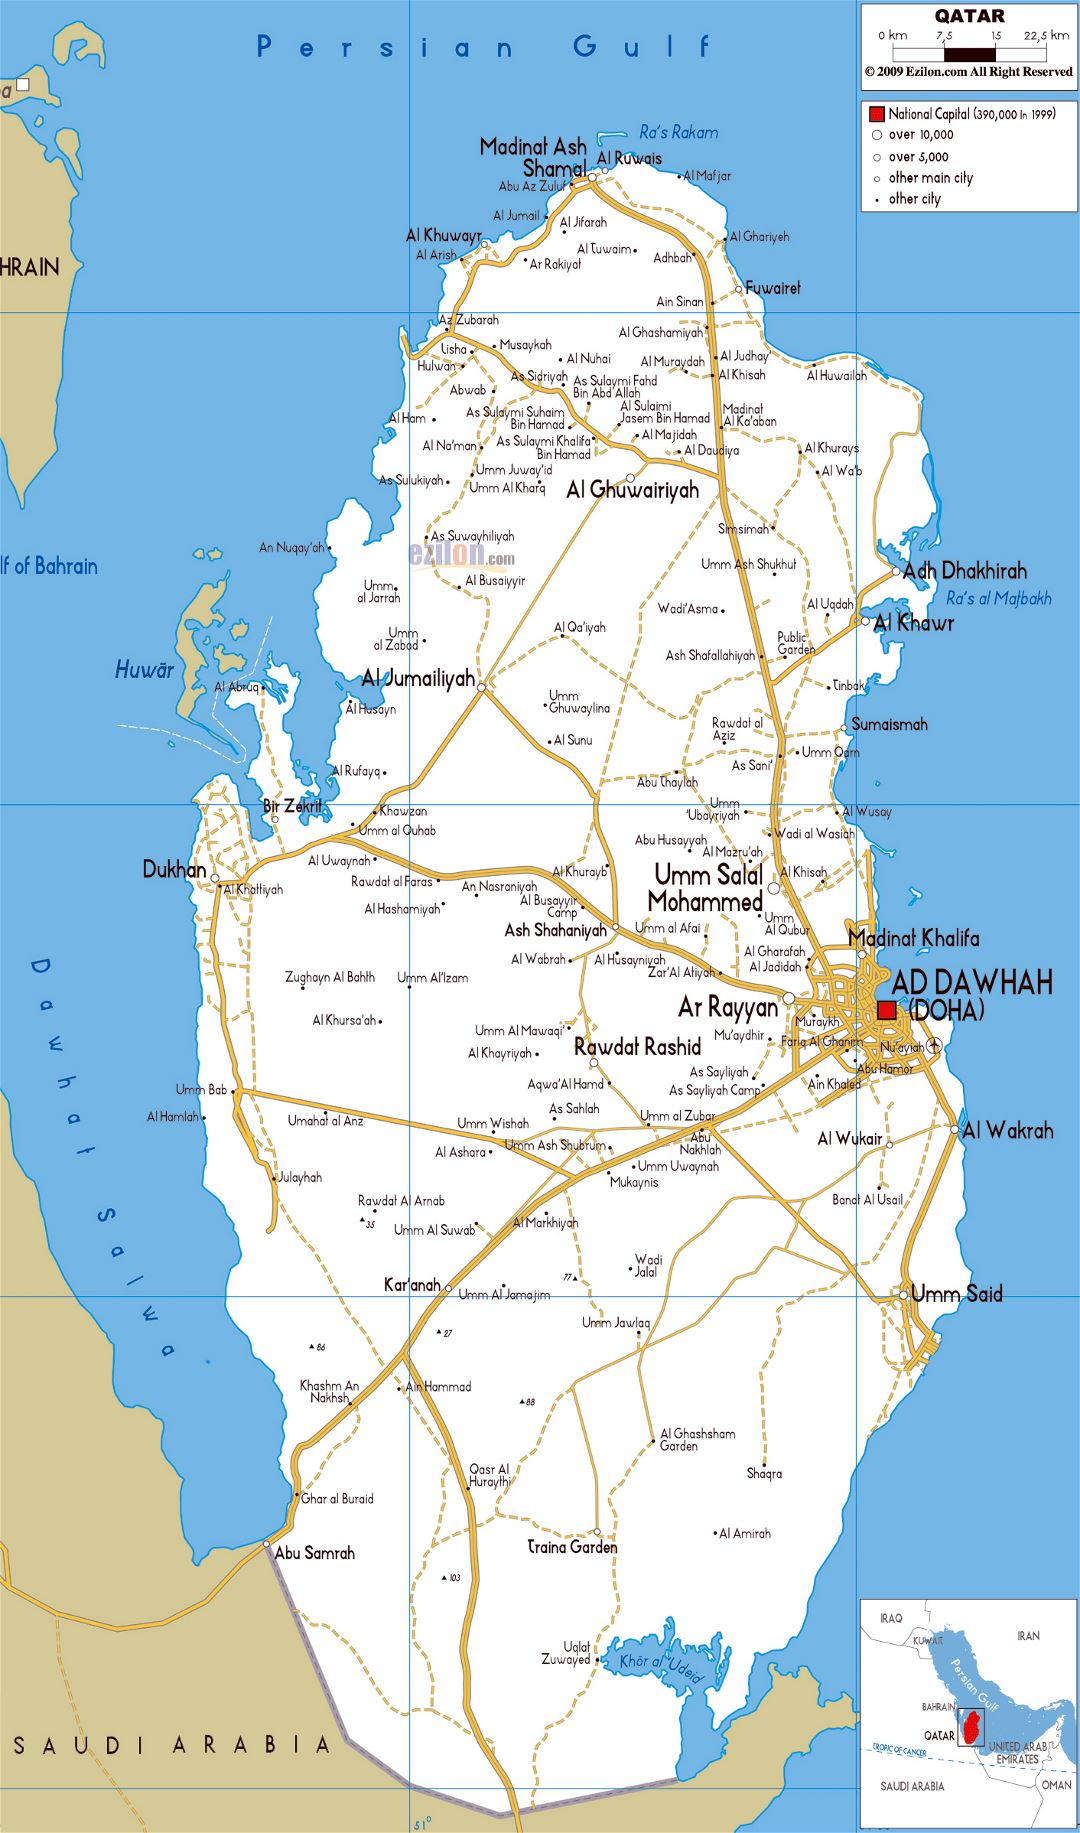 Large road map of Qatar with cities and airports